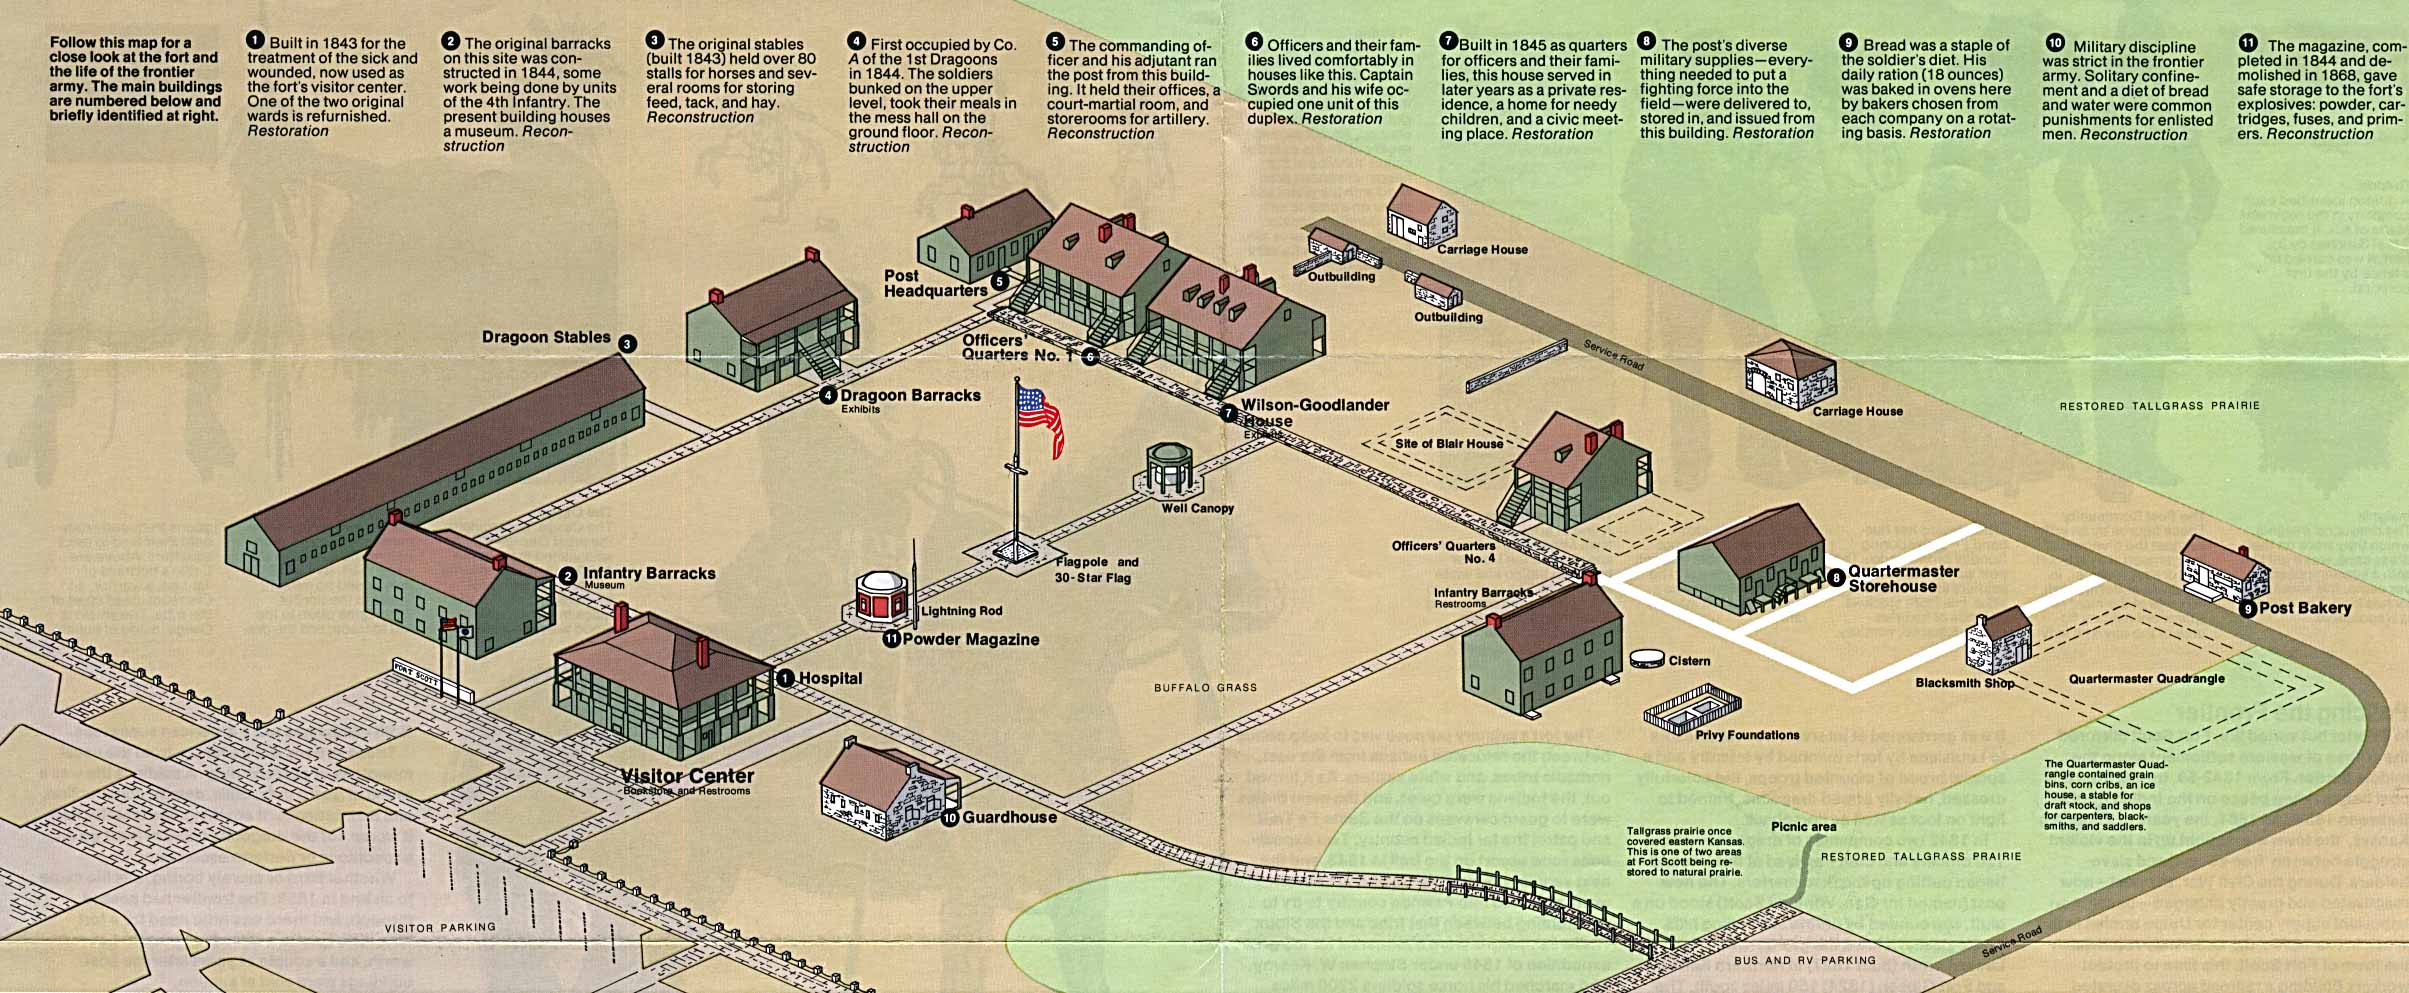 Maps of United States National Parks, Monuments and Historic Sites Fort Scott National Historic Site [Kansas] (Schematic) 1993 (390K)